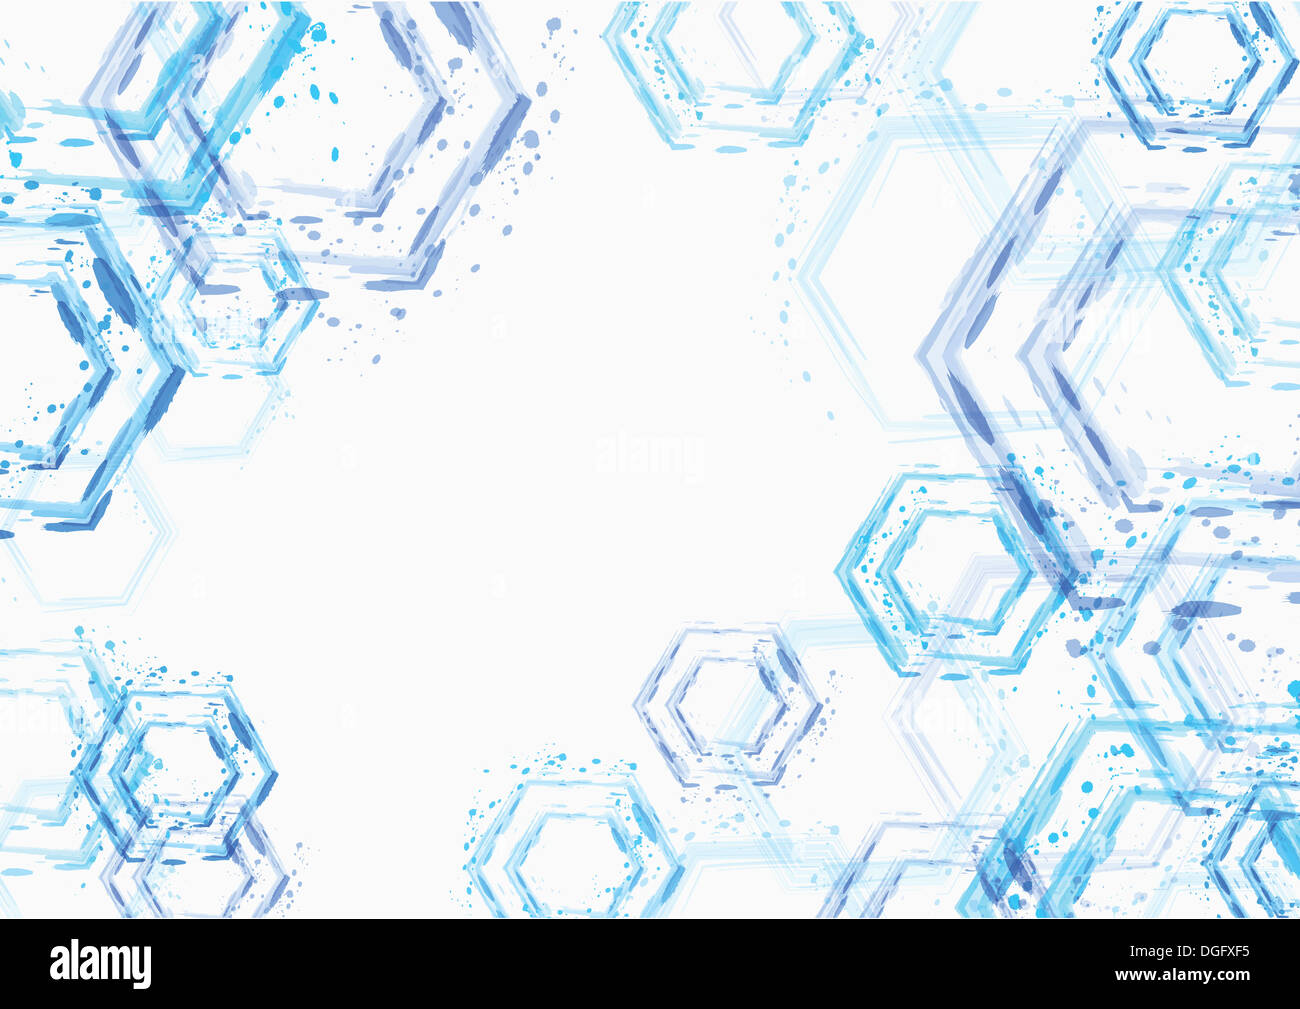 Ppt Background Template Design With Blue Shapes Stock Photo